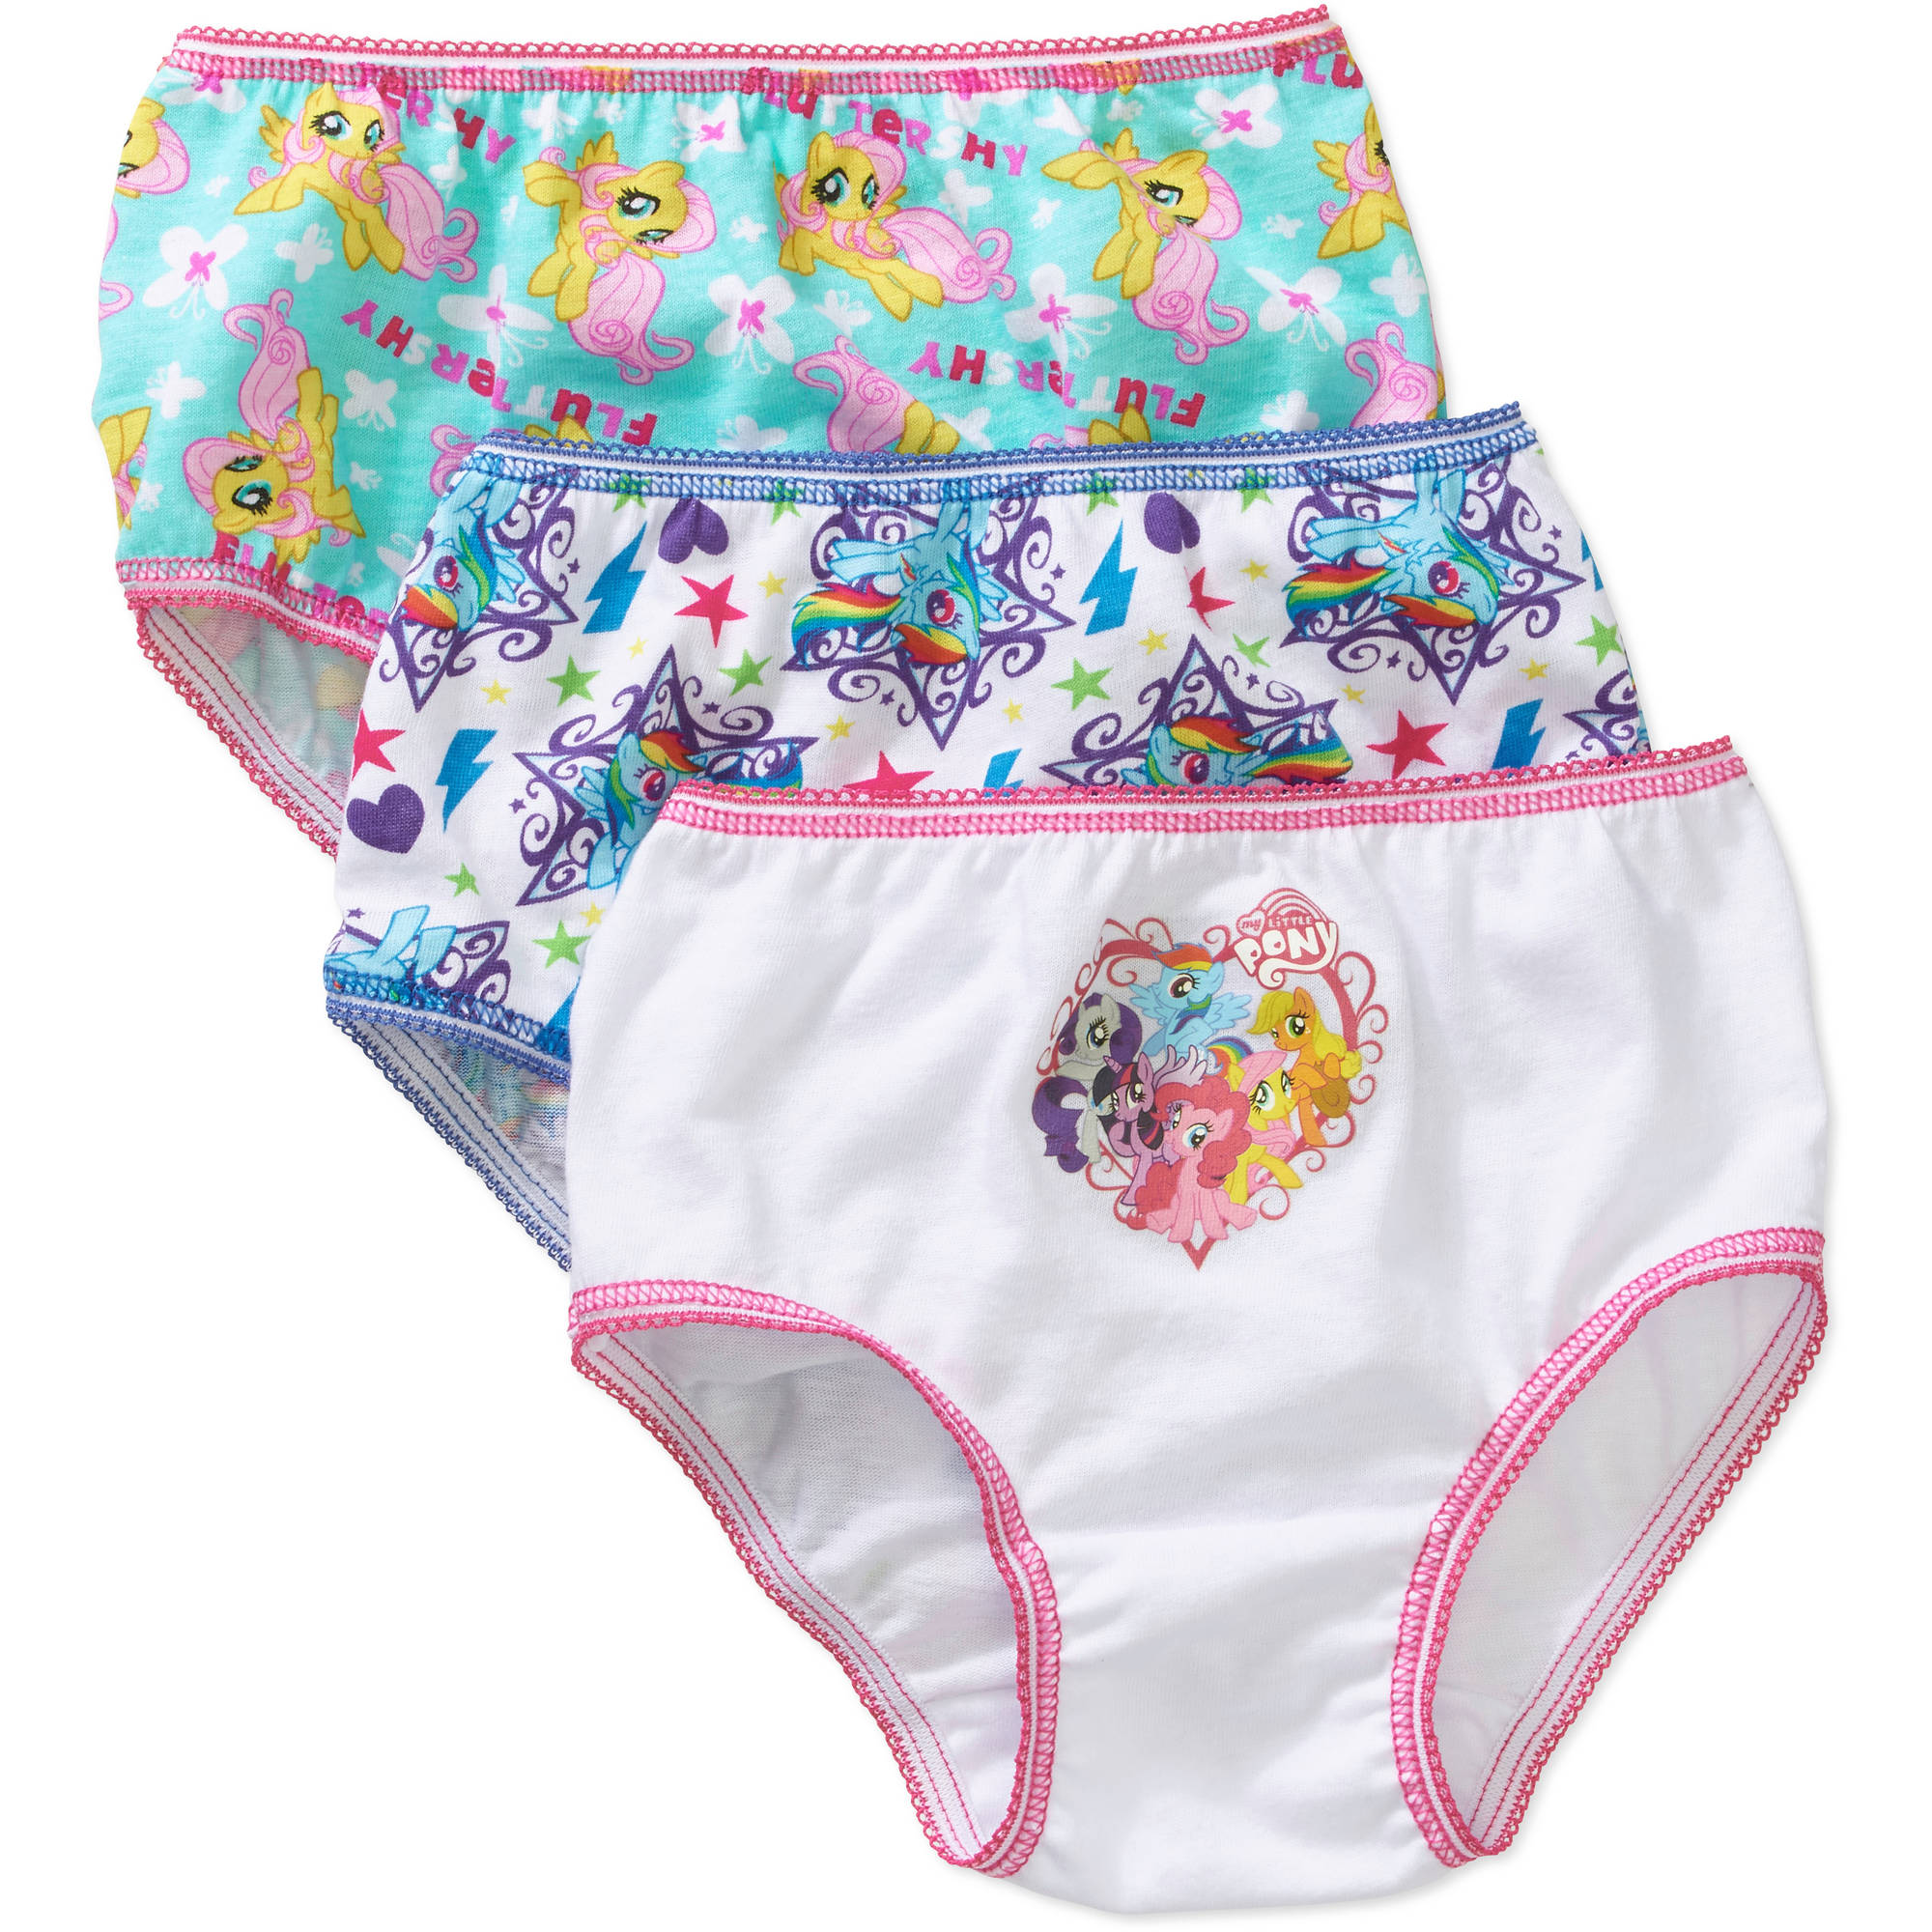 My Little Pony Toddler Girls Undewear, 3 Pack